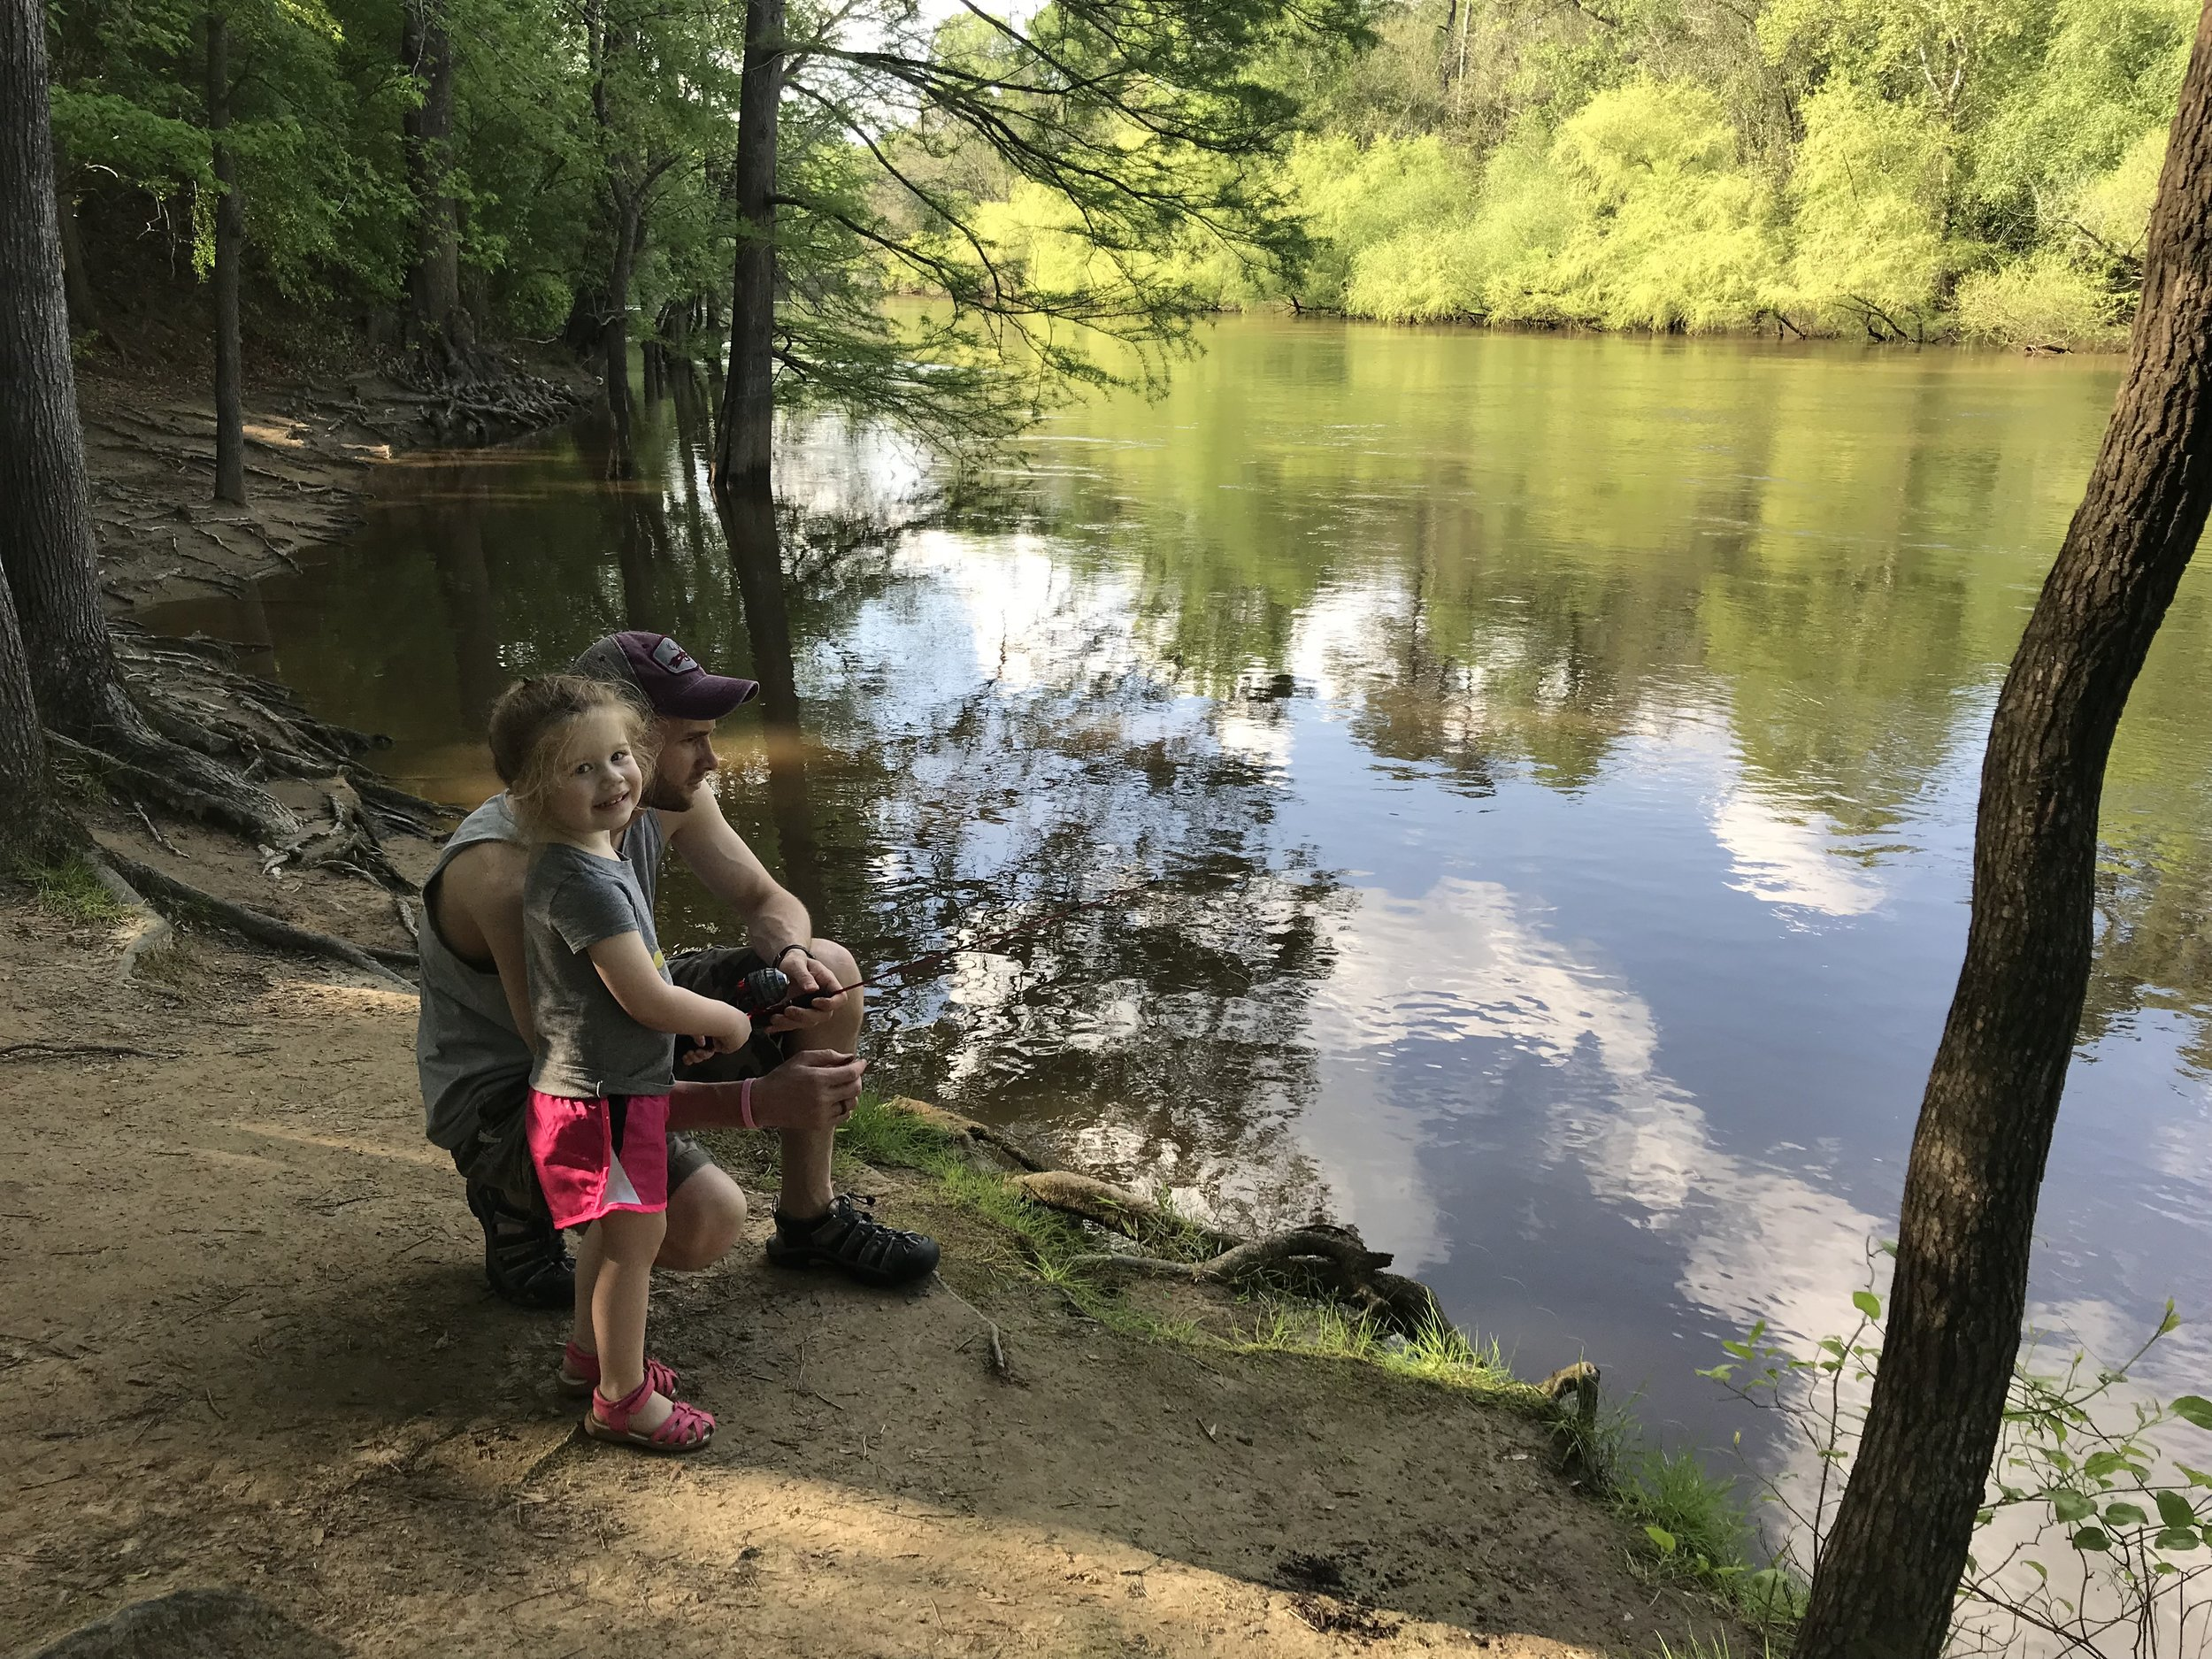 Carl and Elin fishing in the Neuse River.